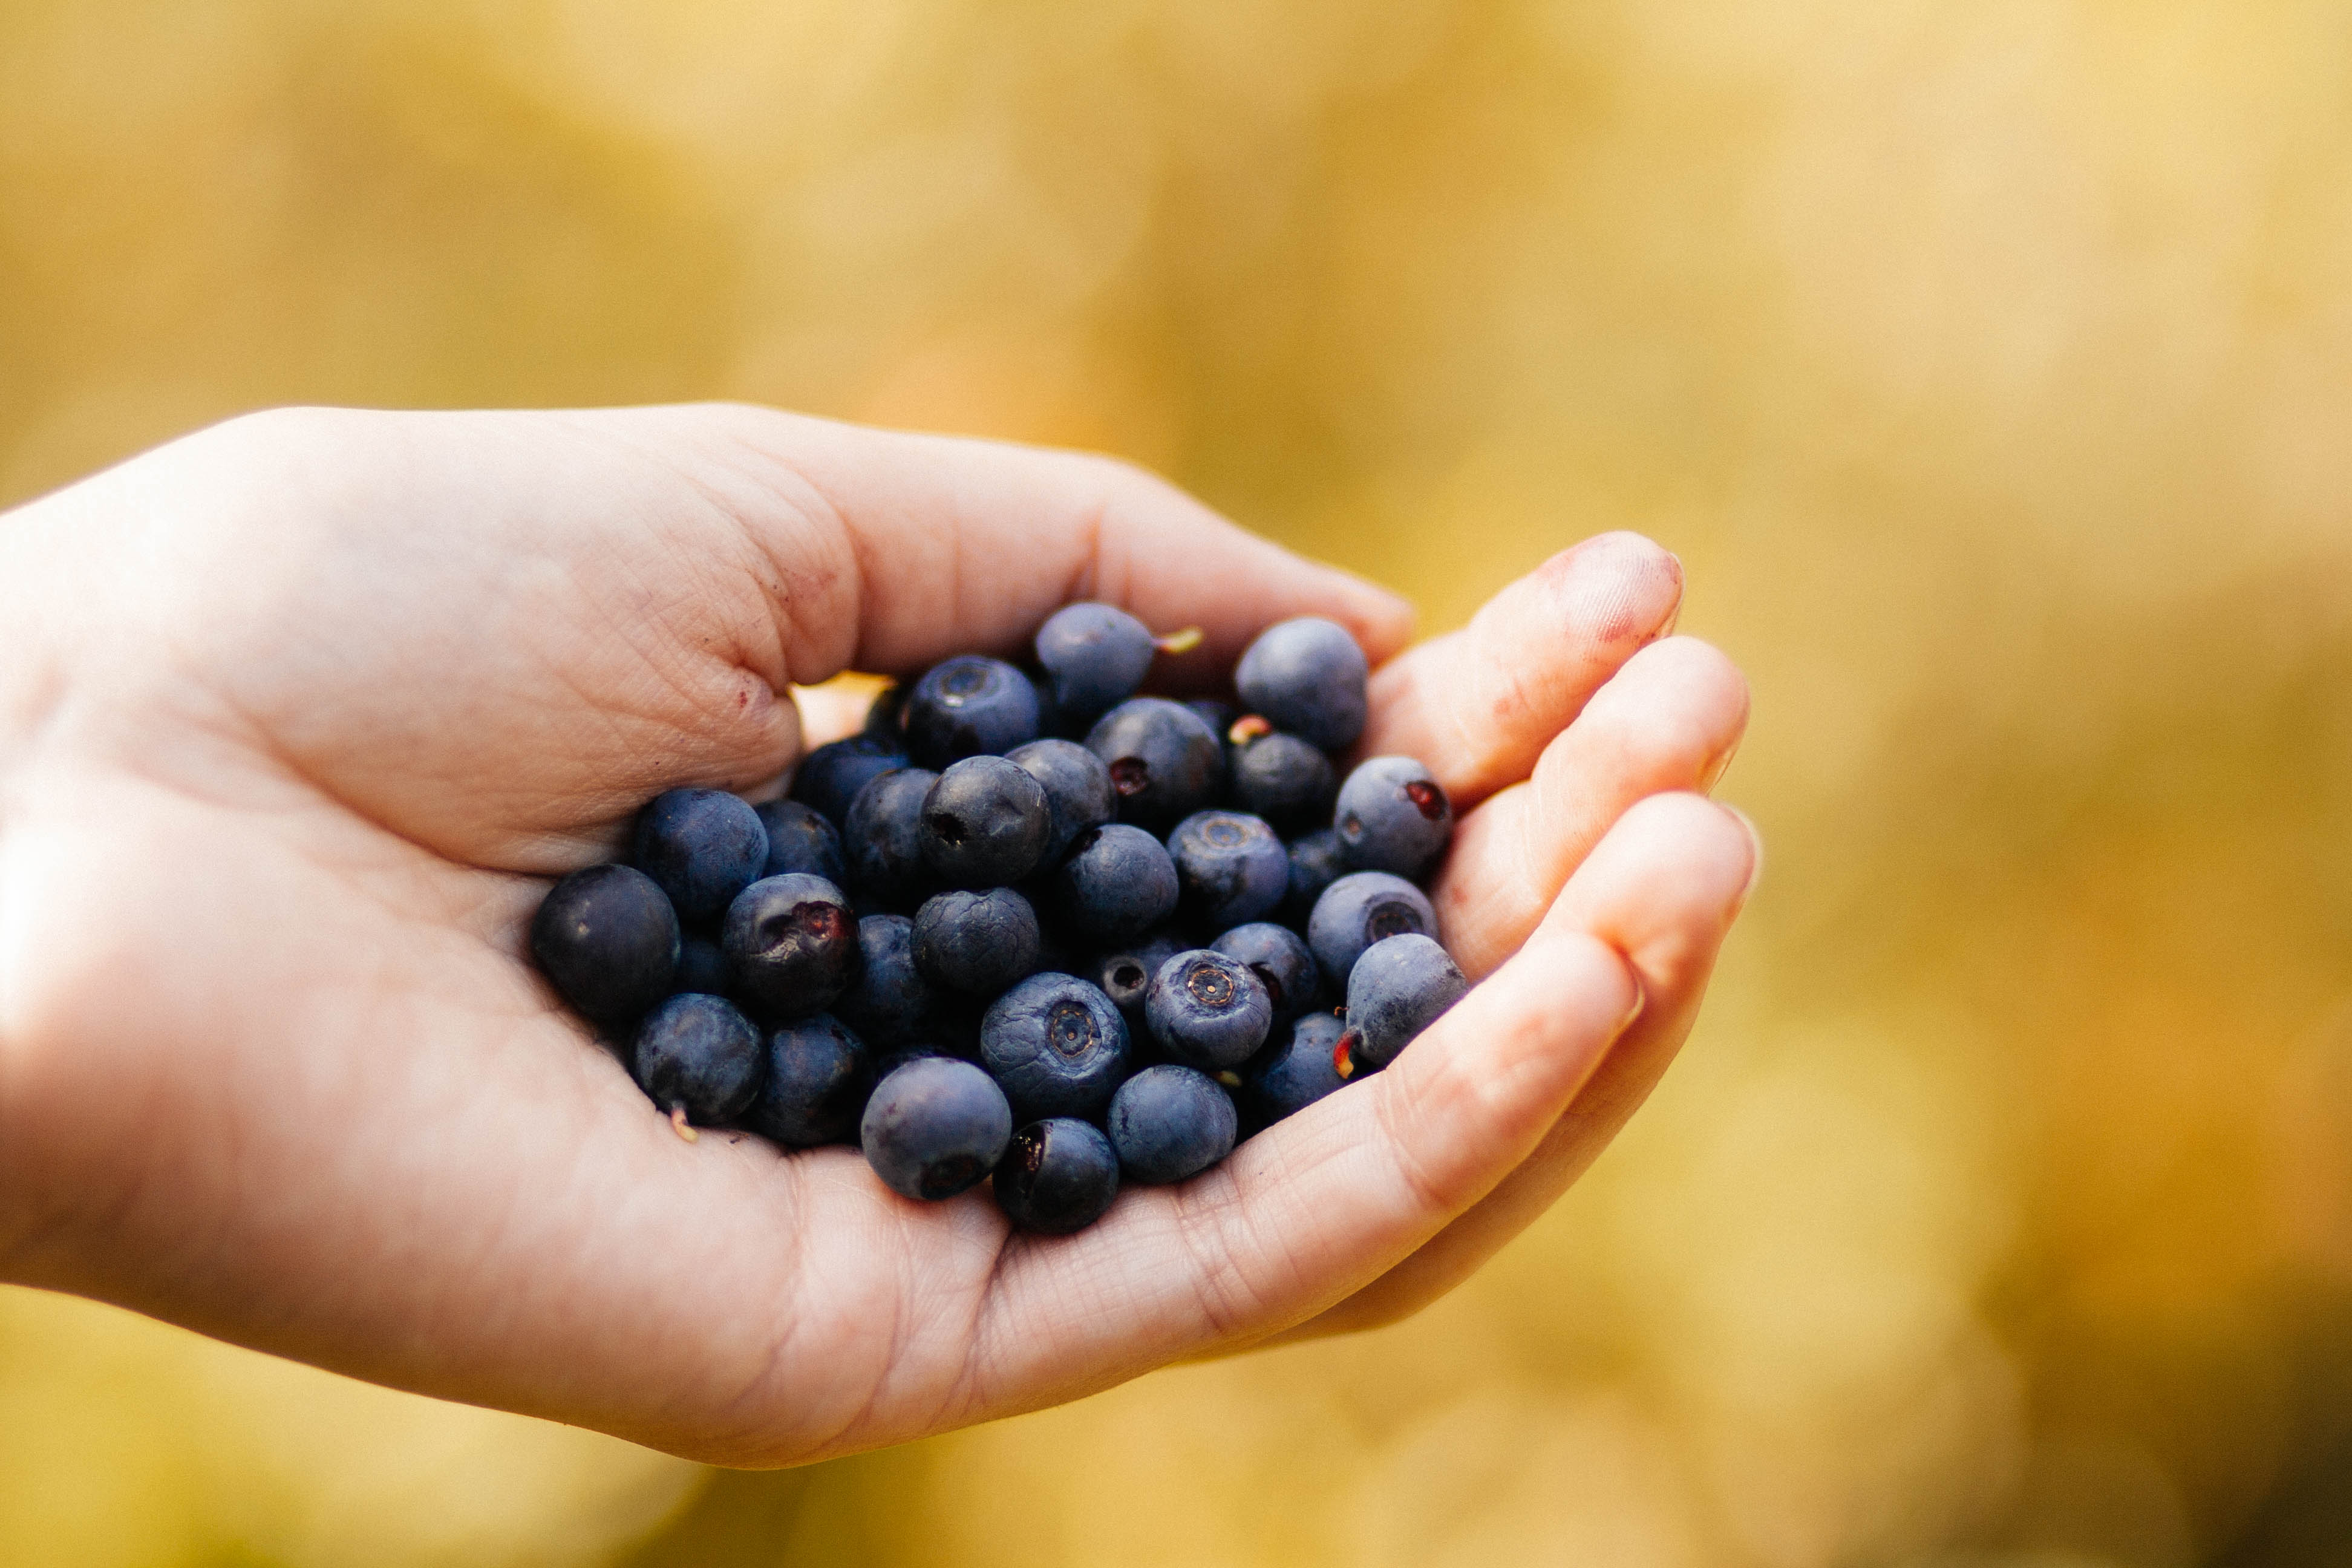 Selective Focus Photography of Blueberry on Human Hand